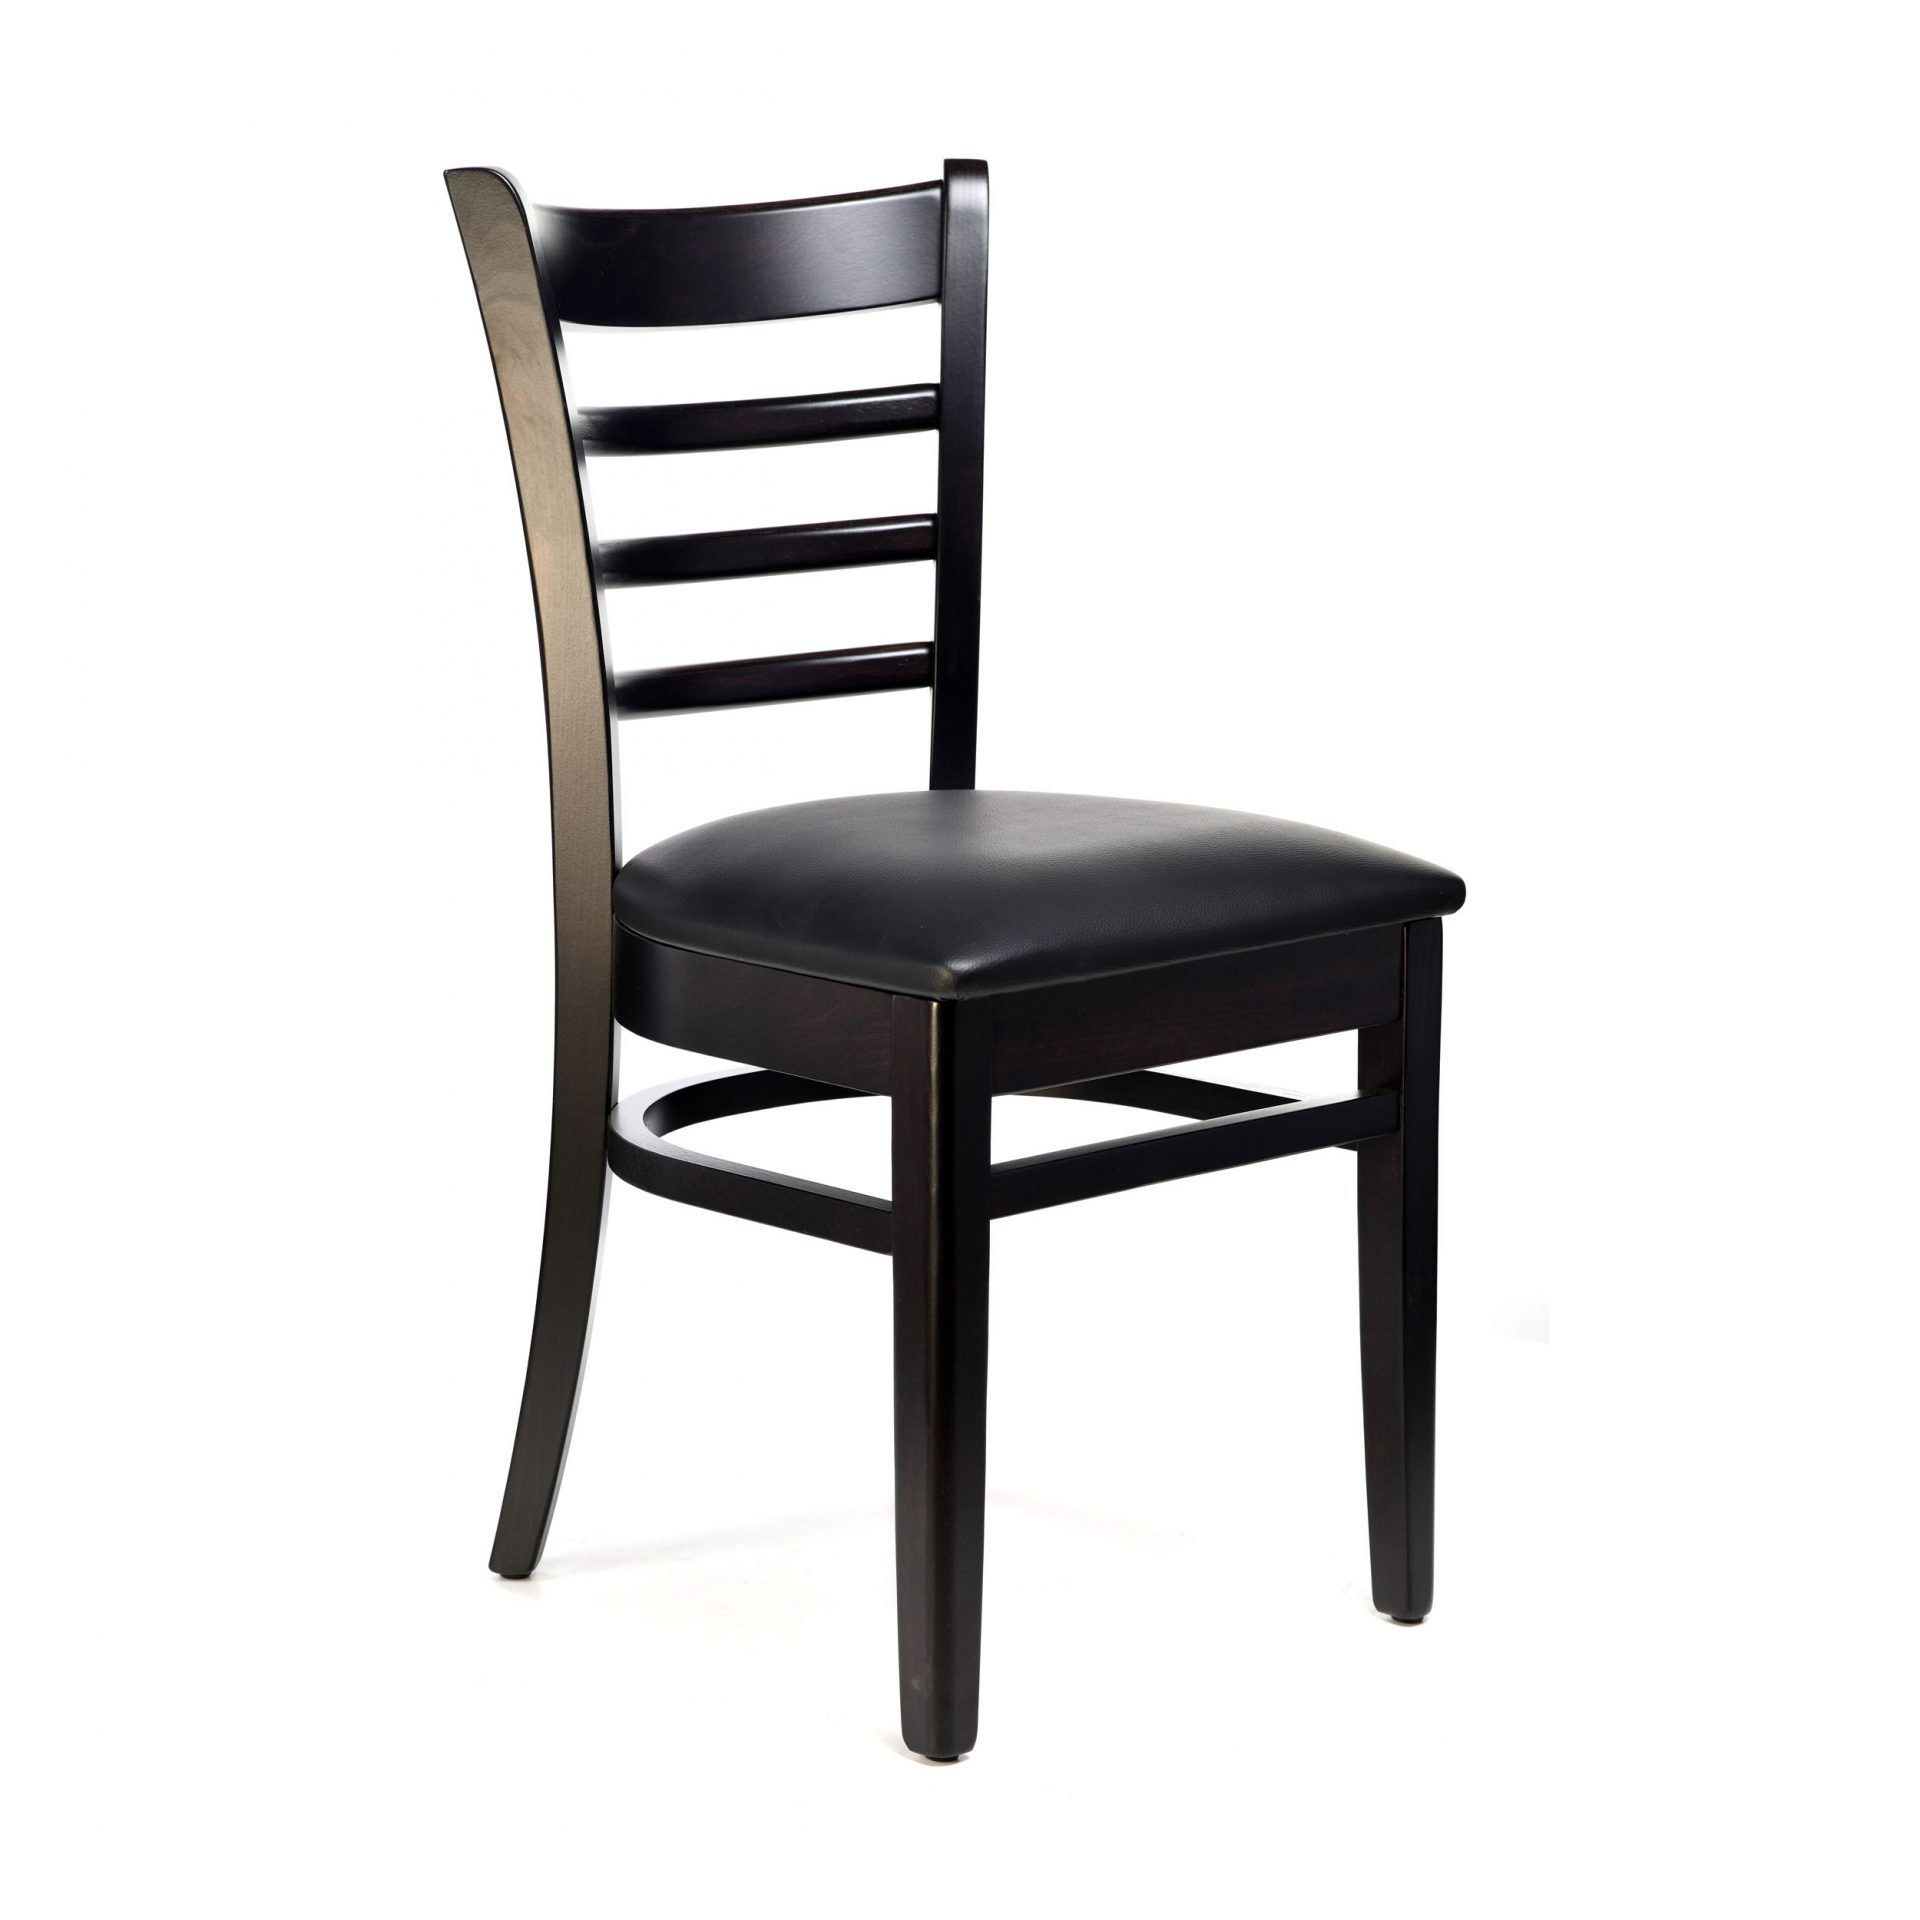 Florence Chair - Chocolate - Vinyl Seat (Black) - Made in Europe